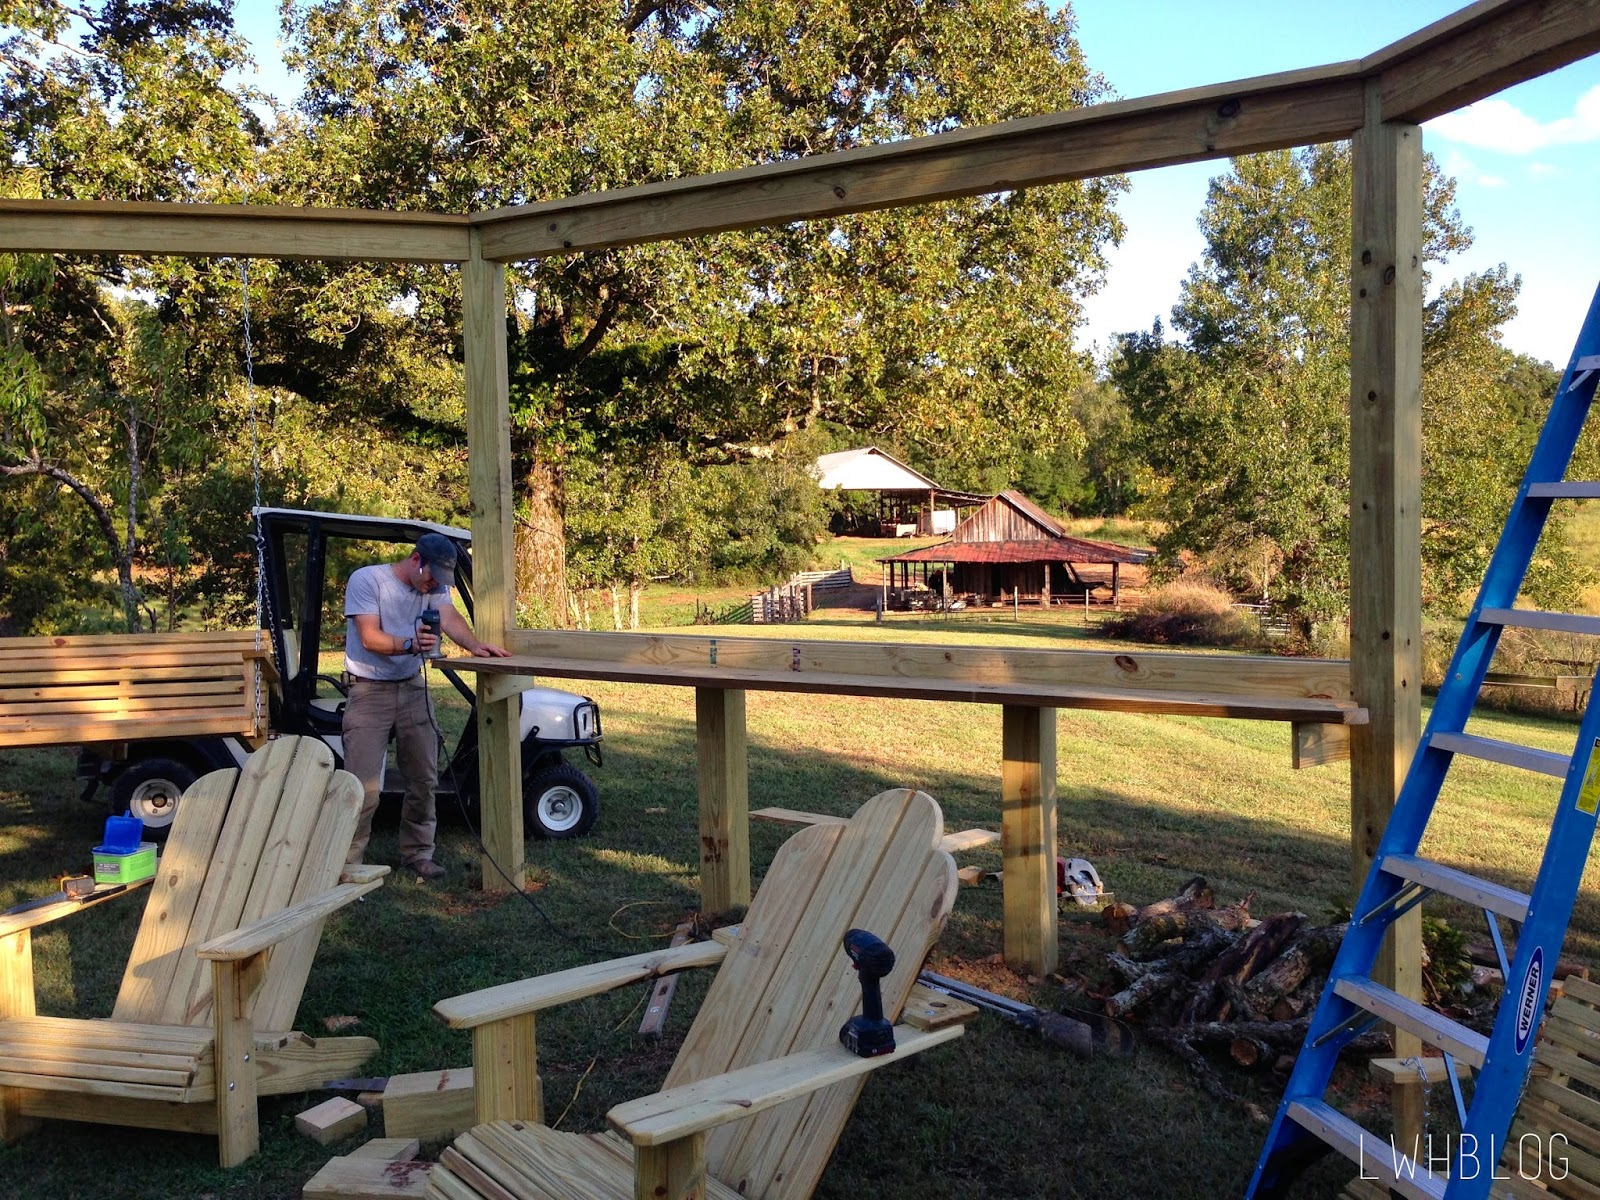 Tutorial Build an Amazing DIY Pergola and Firepit with Swings